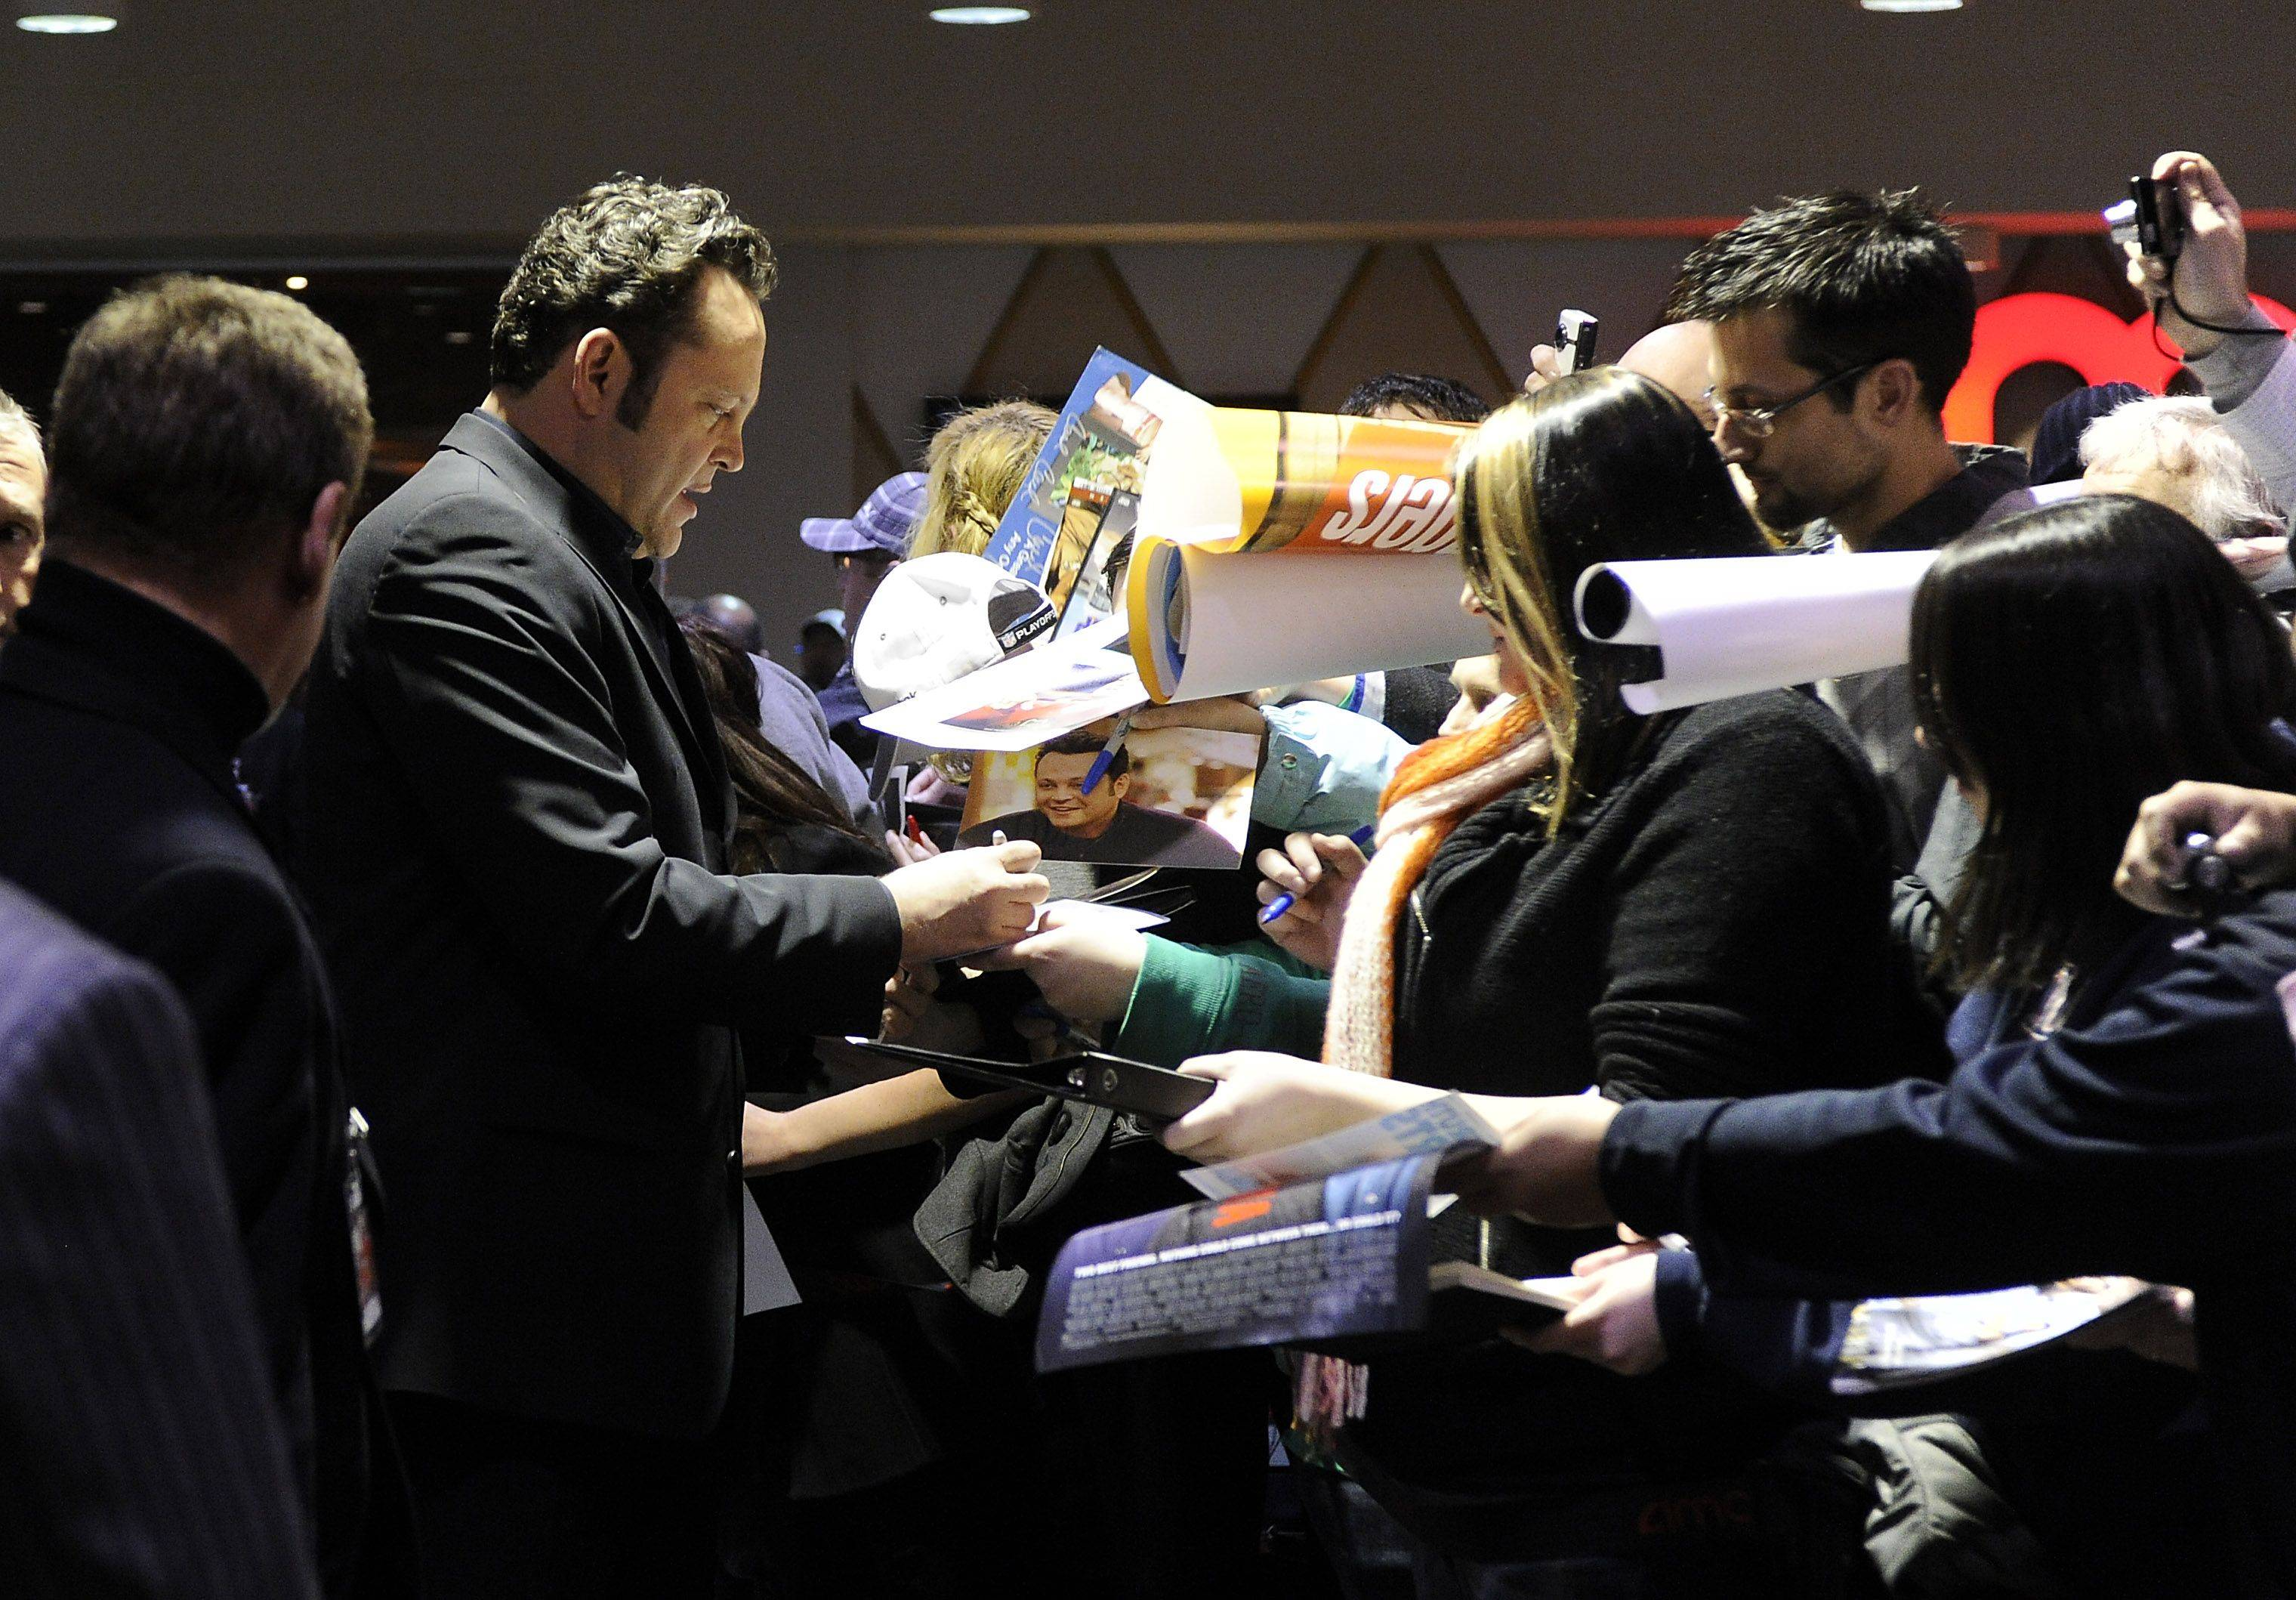 Actor Vince Vaughn signs autographs for fans at the Chicago premiere of the feature film The Dilemma.